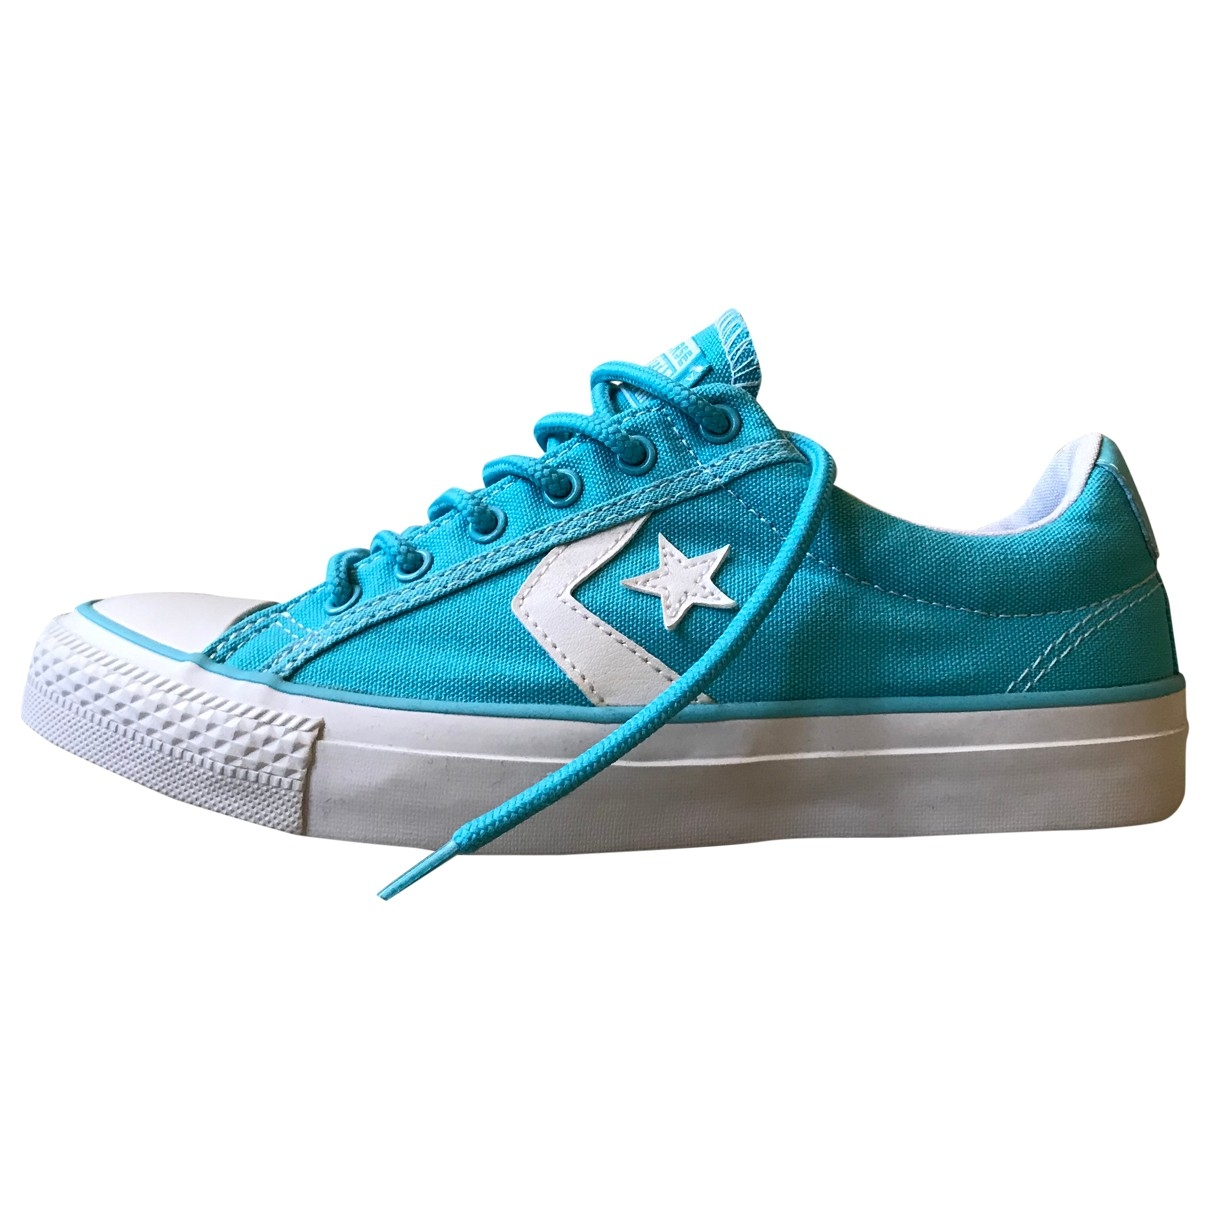 Converse \N Turquoise Cloth Trainers for Women 37 EU